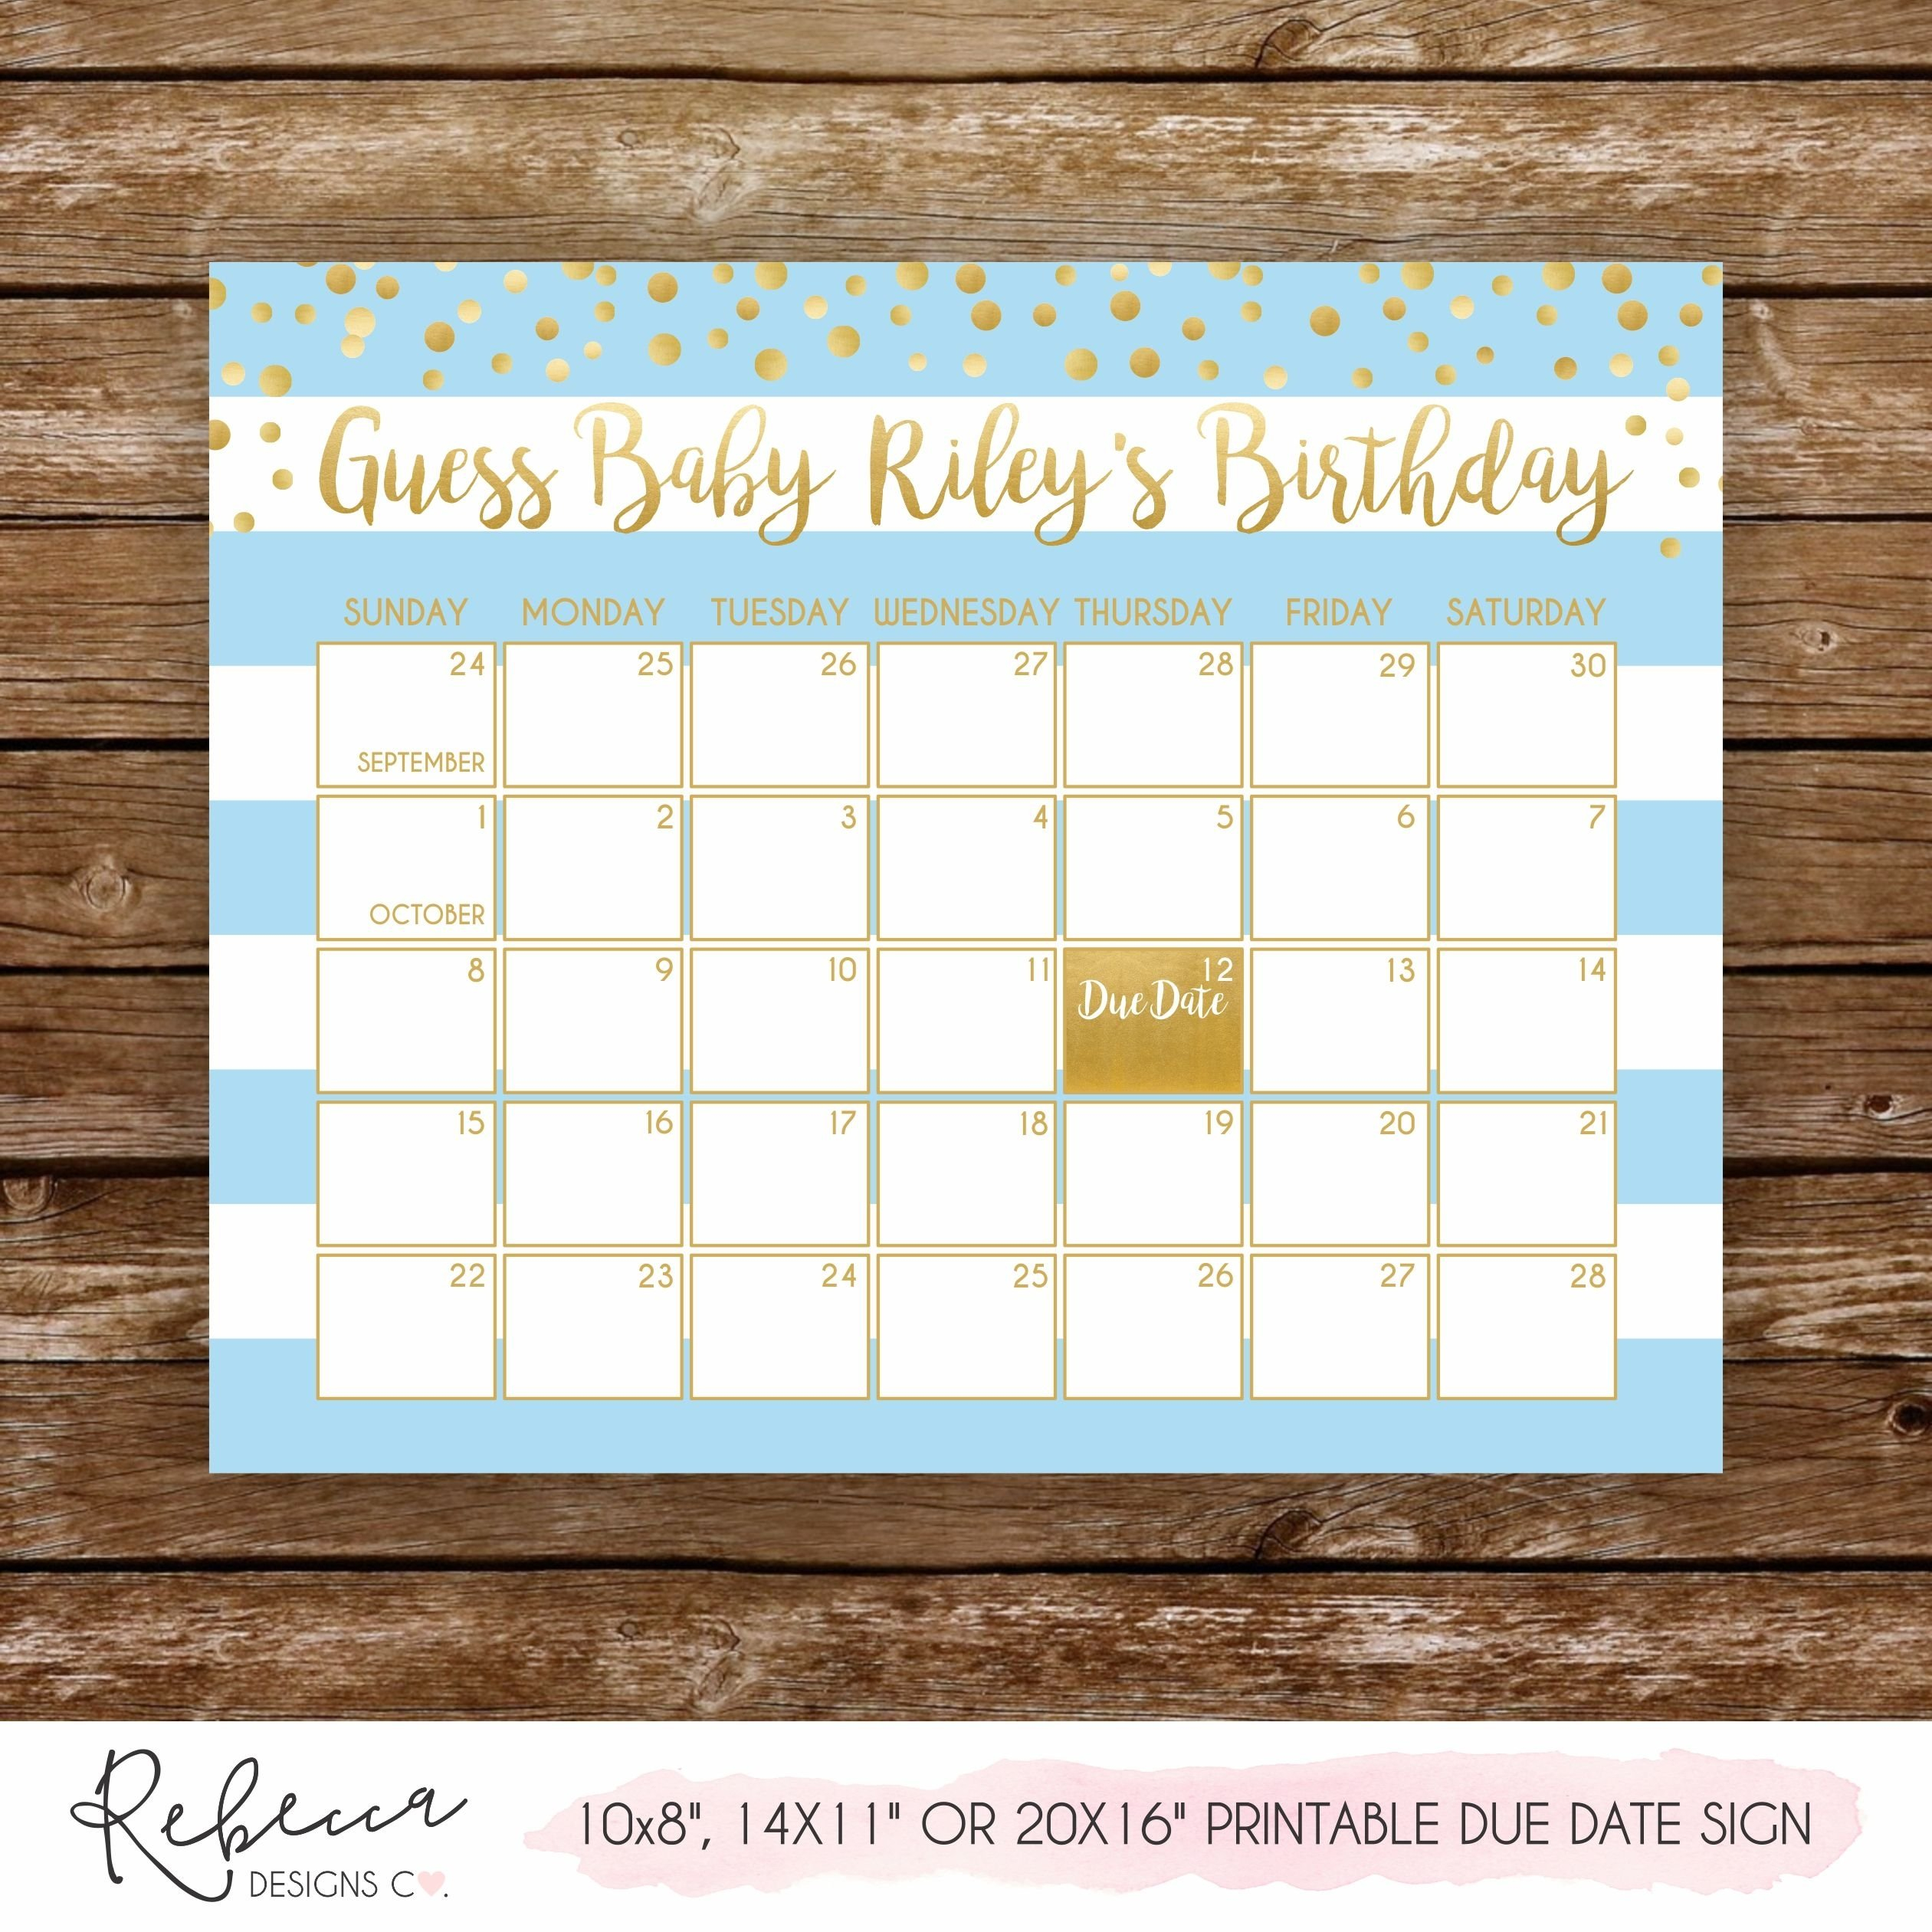 How To Baby Birth Date Guess Calender | Get Your Calendar Guess Baby'S Birth Date